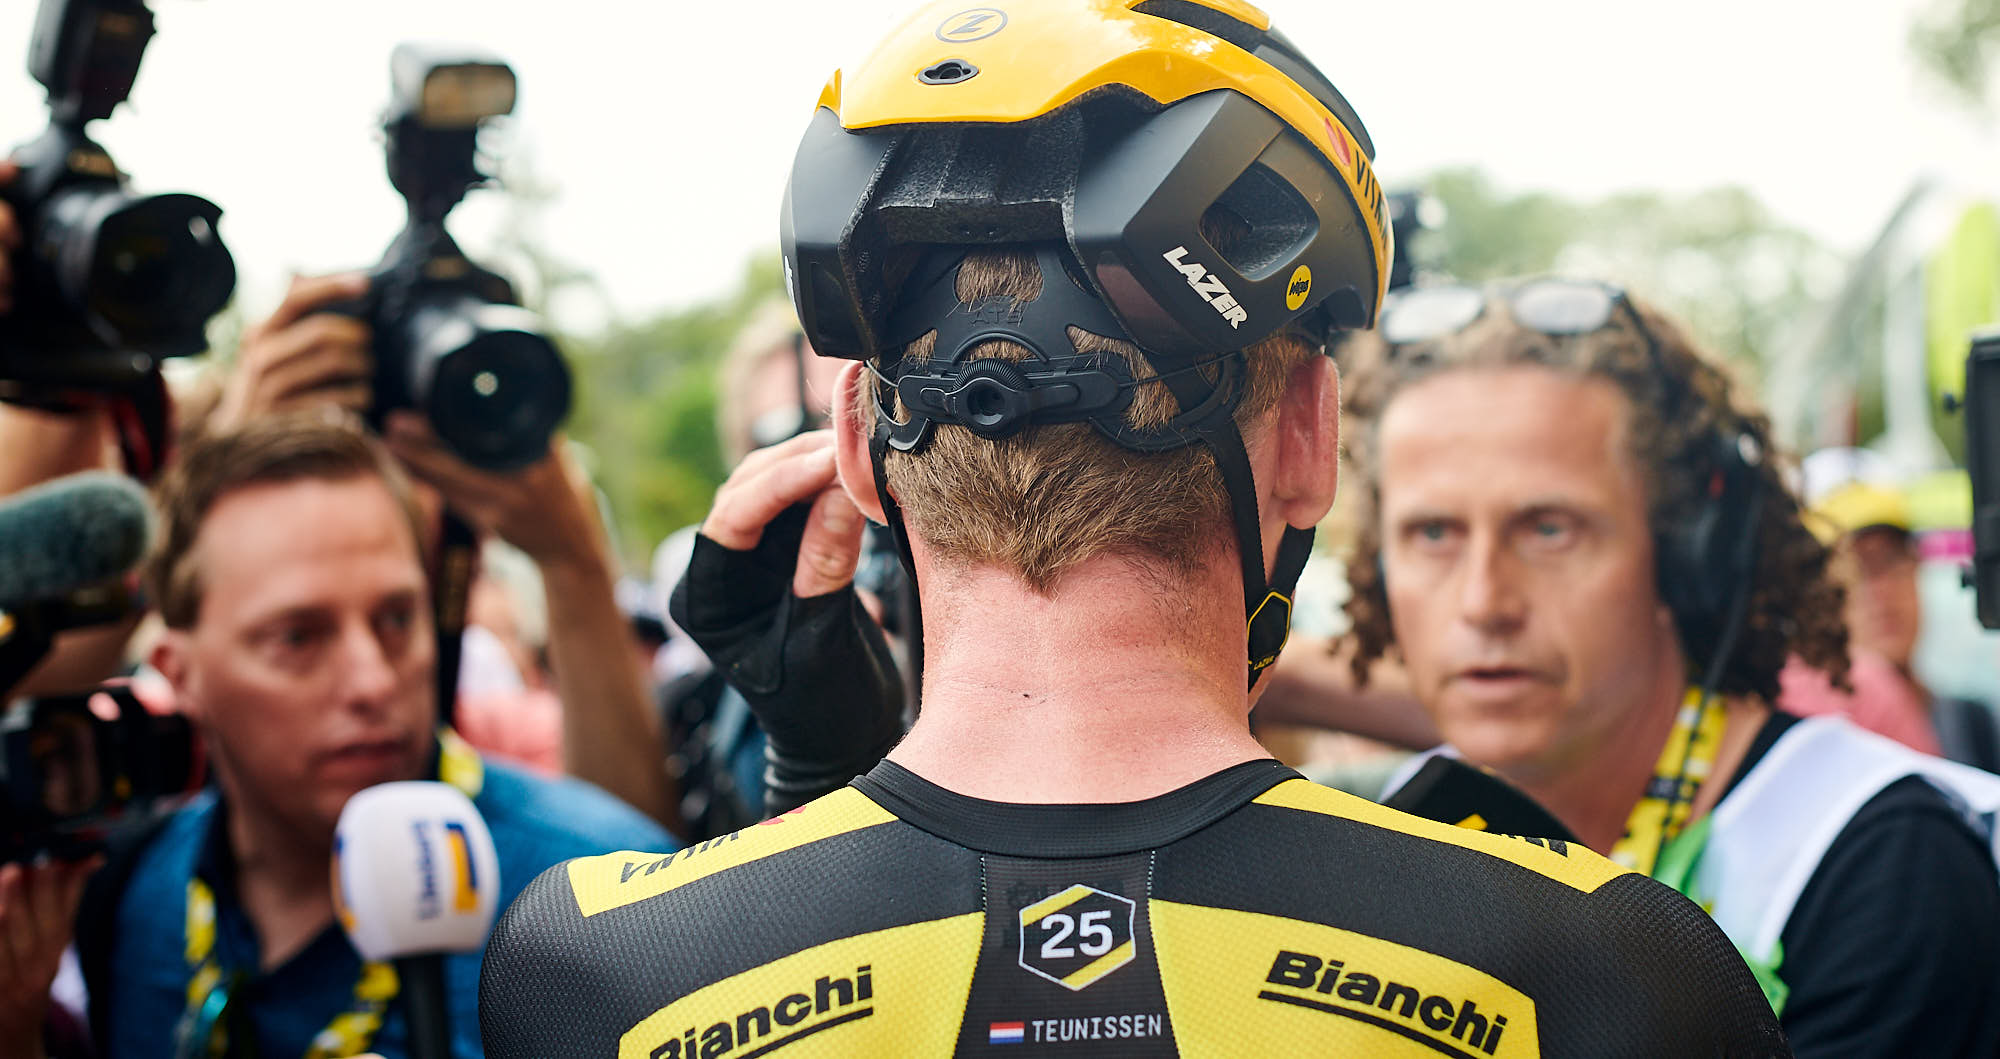 Back view of Mike Teunissen in Brussels at the 2019 Tour de France